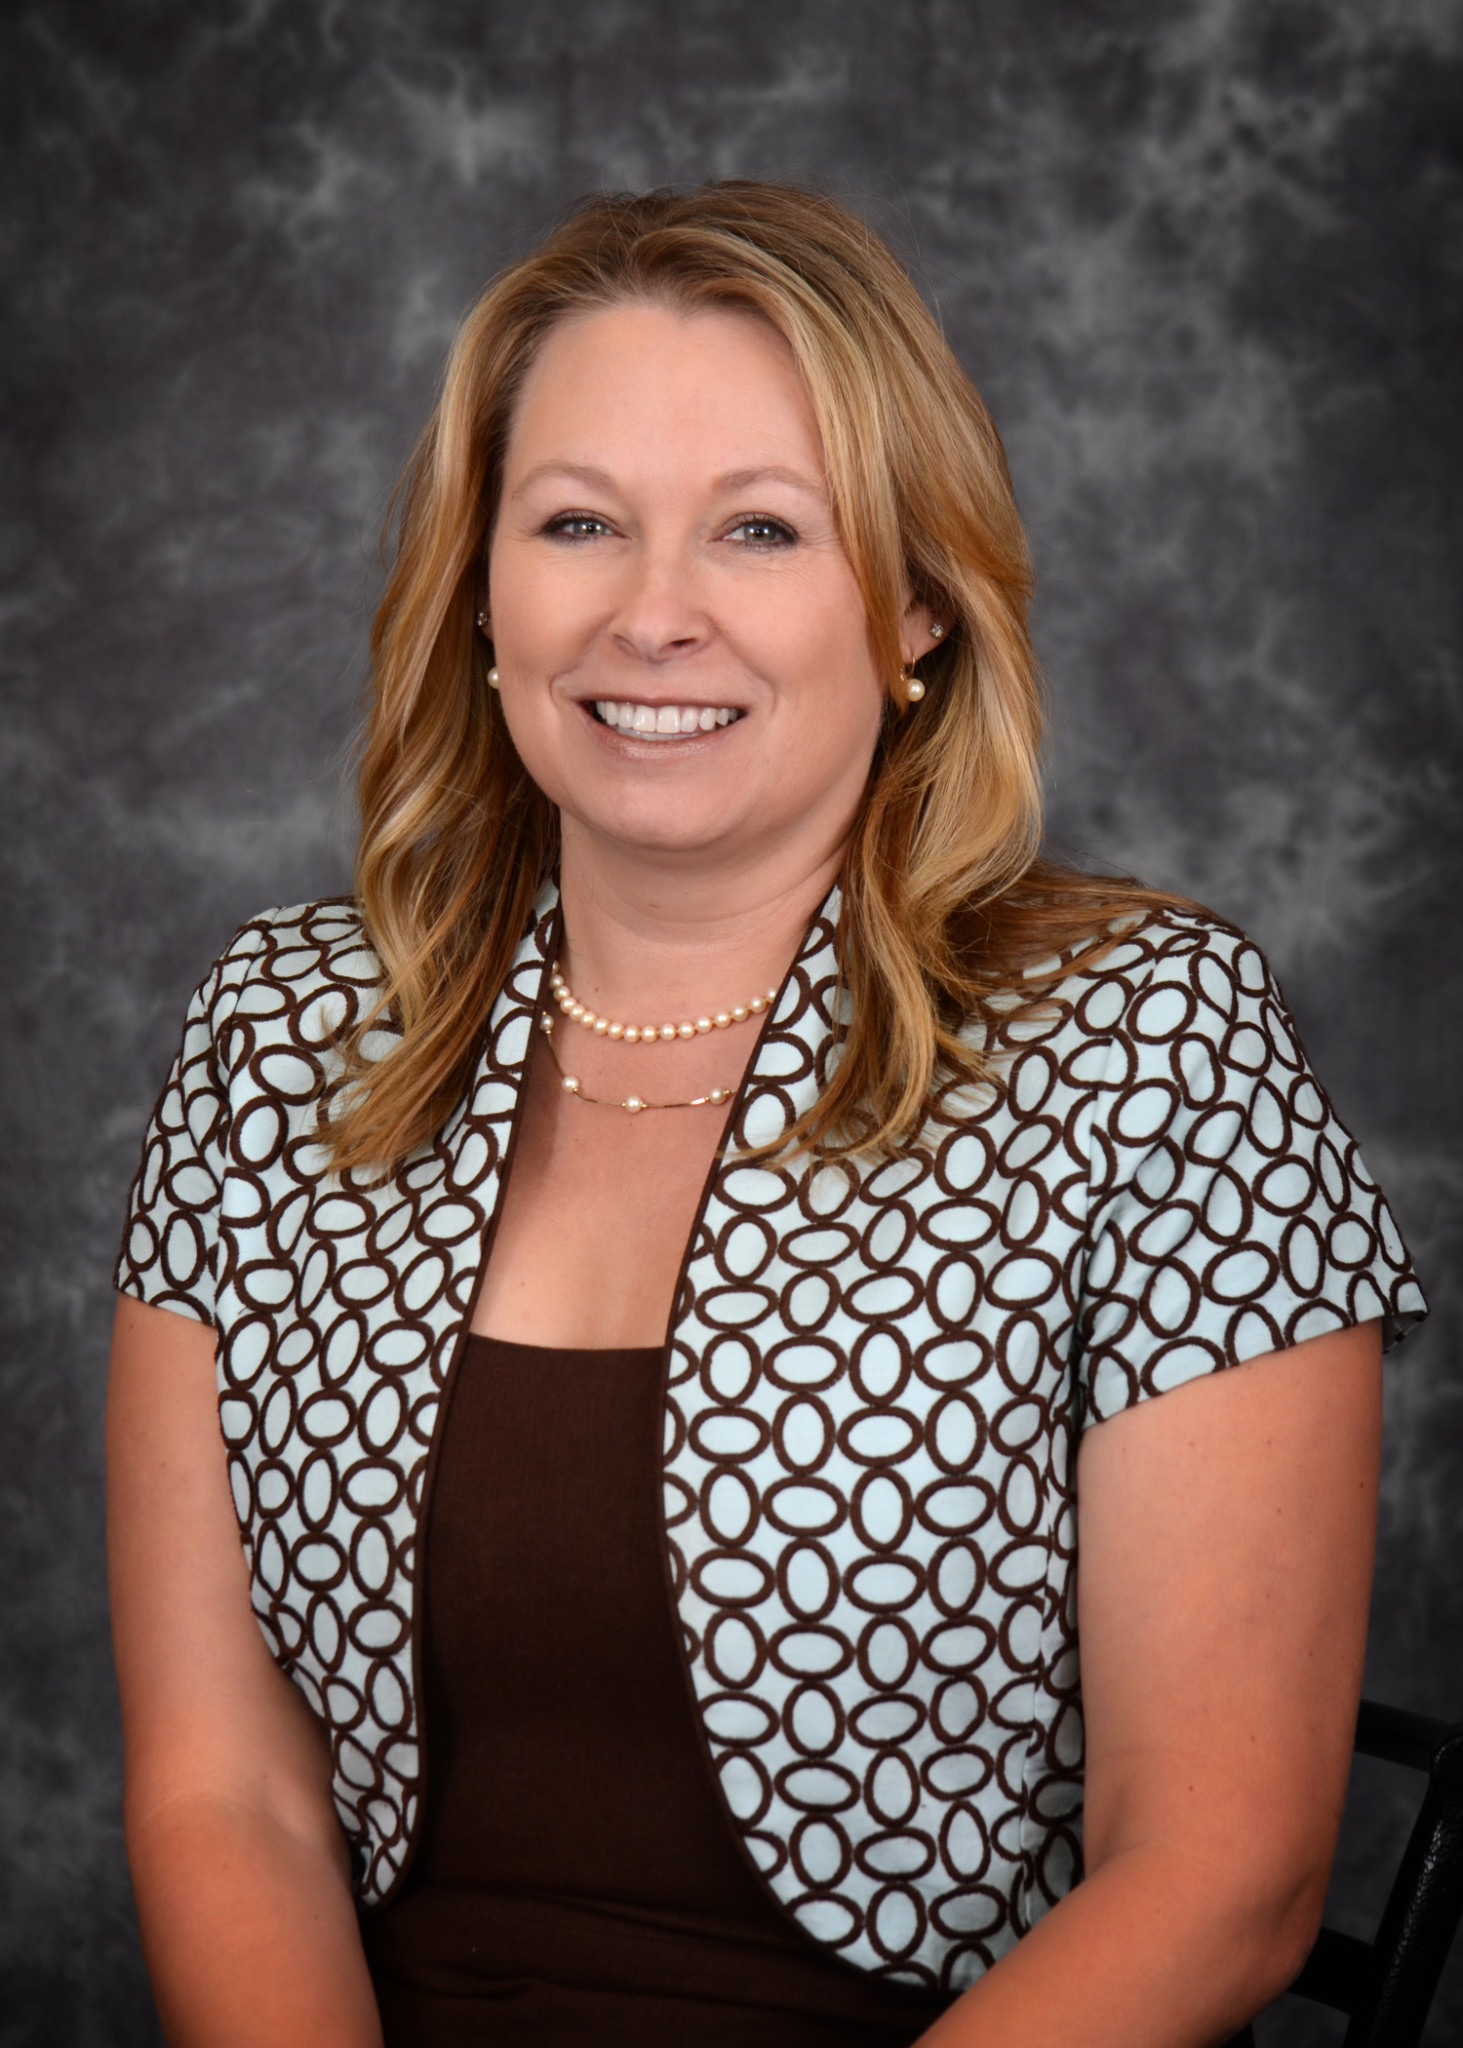 Angela Grunewald, Associate Superintendent of Educational Services